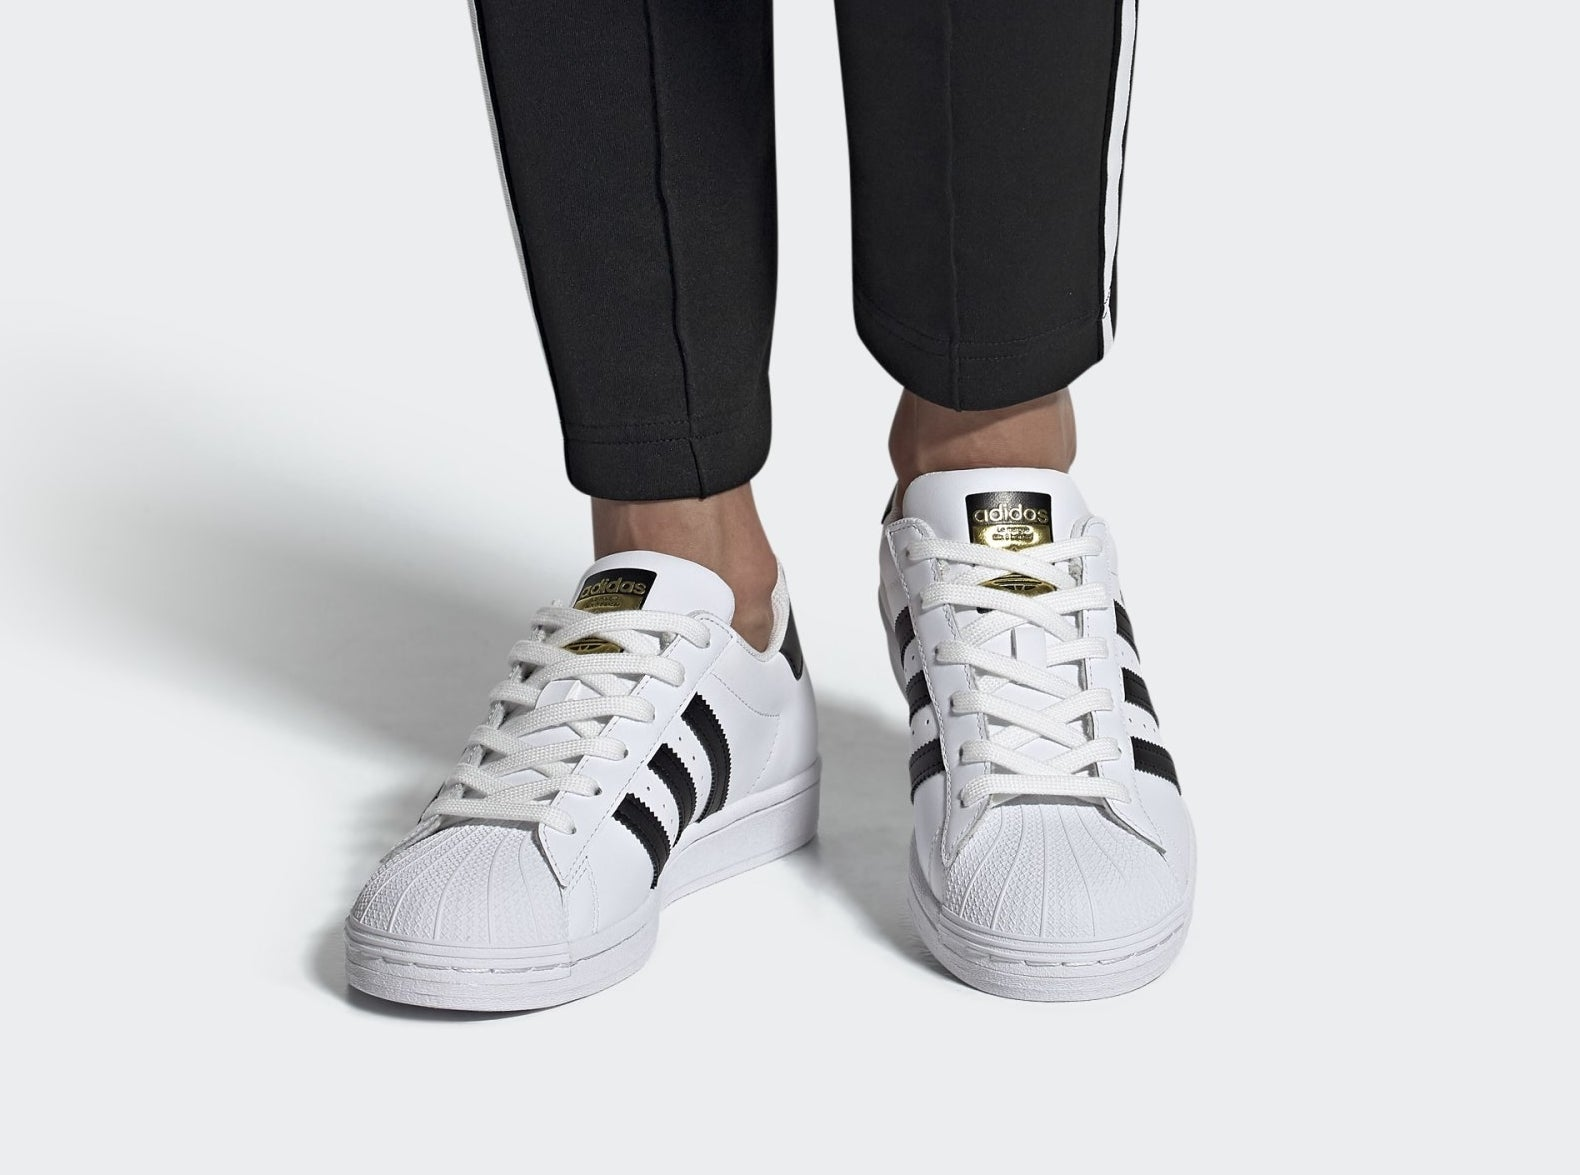 model wearing the white superstar adidas sneakers with black stripes